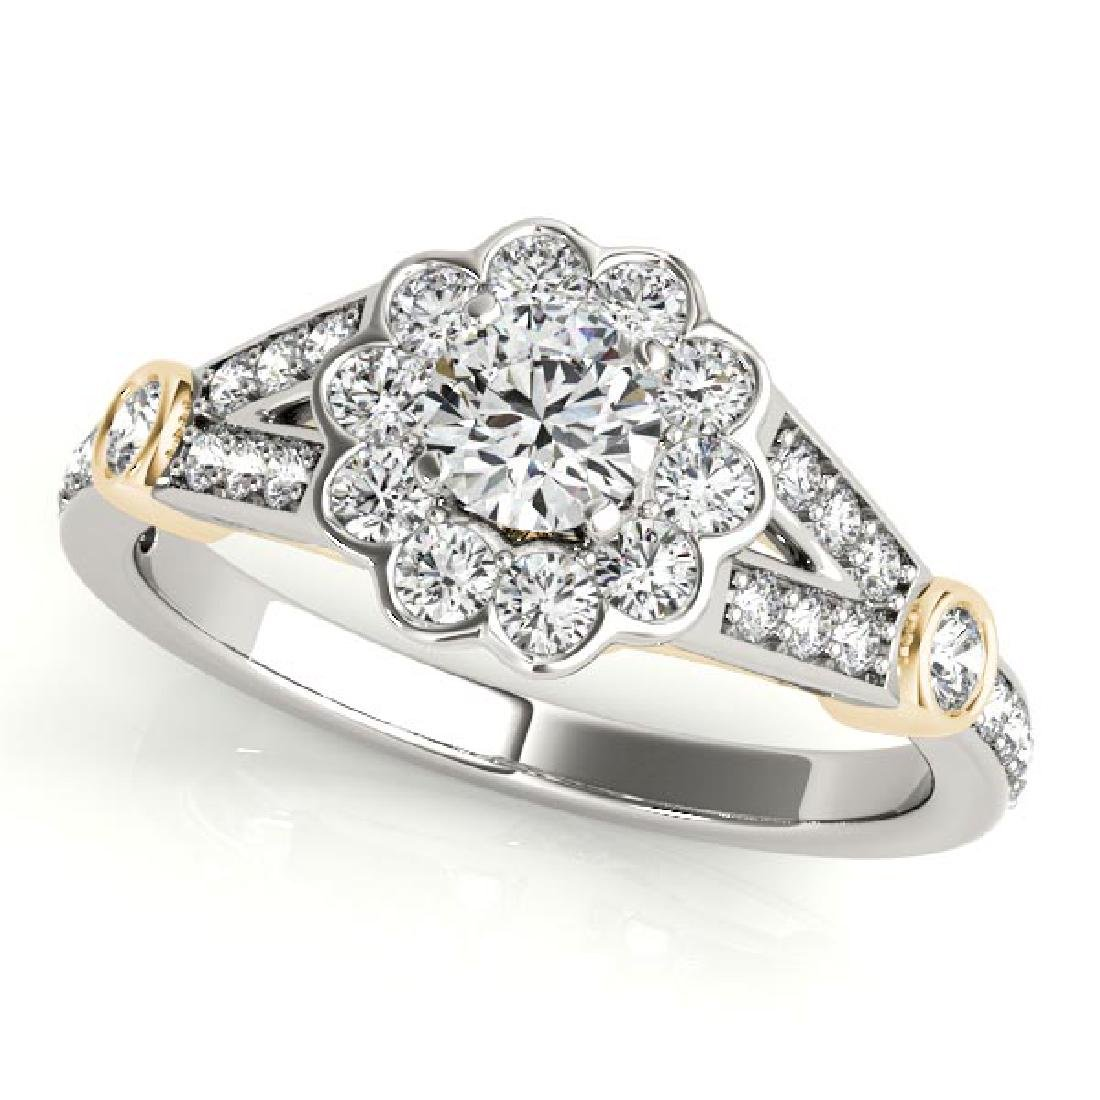 CERTIFIED TWO TONE GOLD 1.54 CT G-H/VS-SI1 DIAMOND HALO